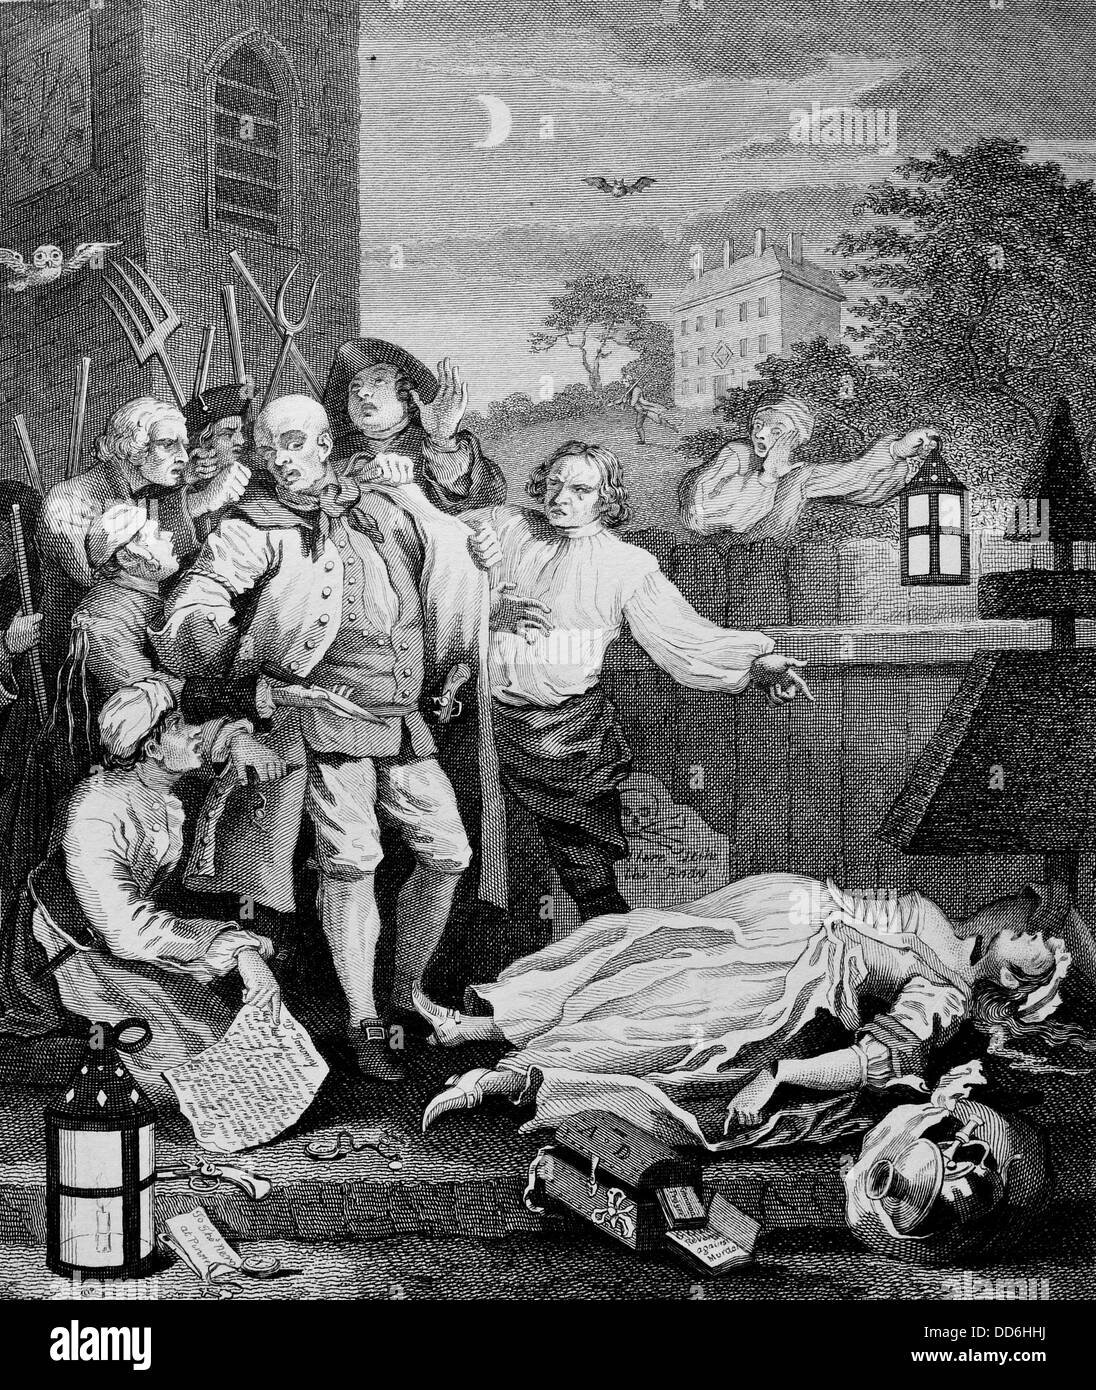 The four stages of cruelty . Cruelty in Perfection. Engraved by J.Romney from the original by William Hogarth. - Stock Image